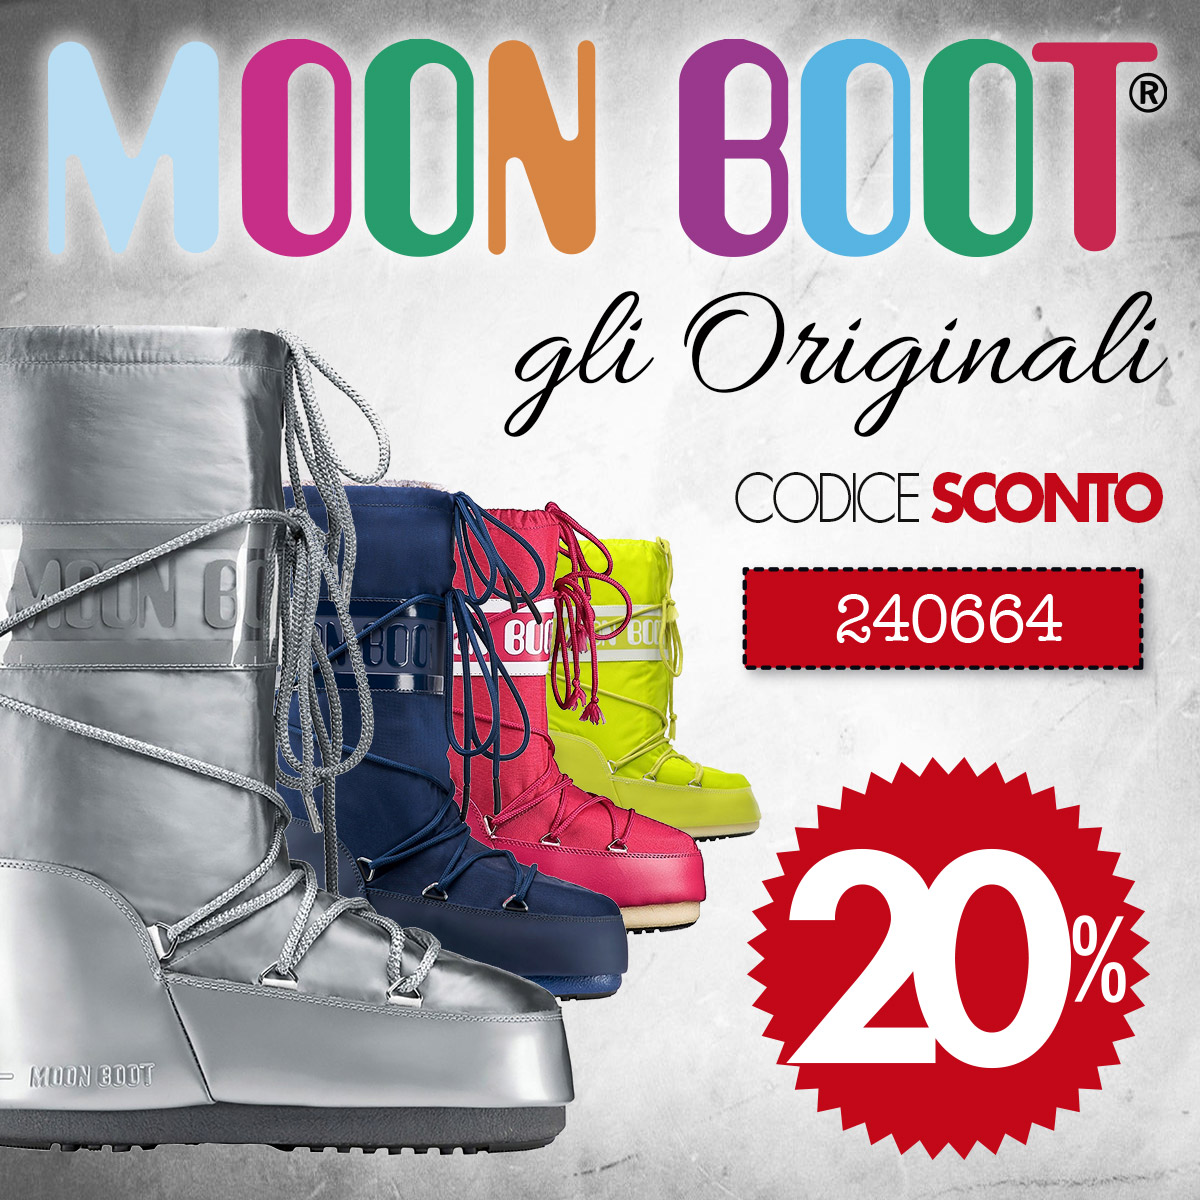 Moon Boot, il must have dei doposci, con lo sconto del 20%